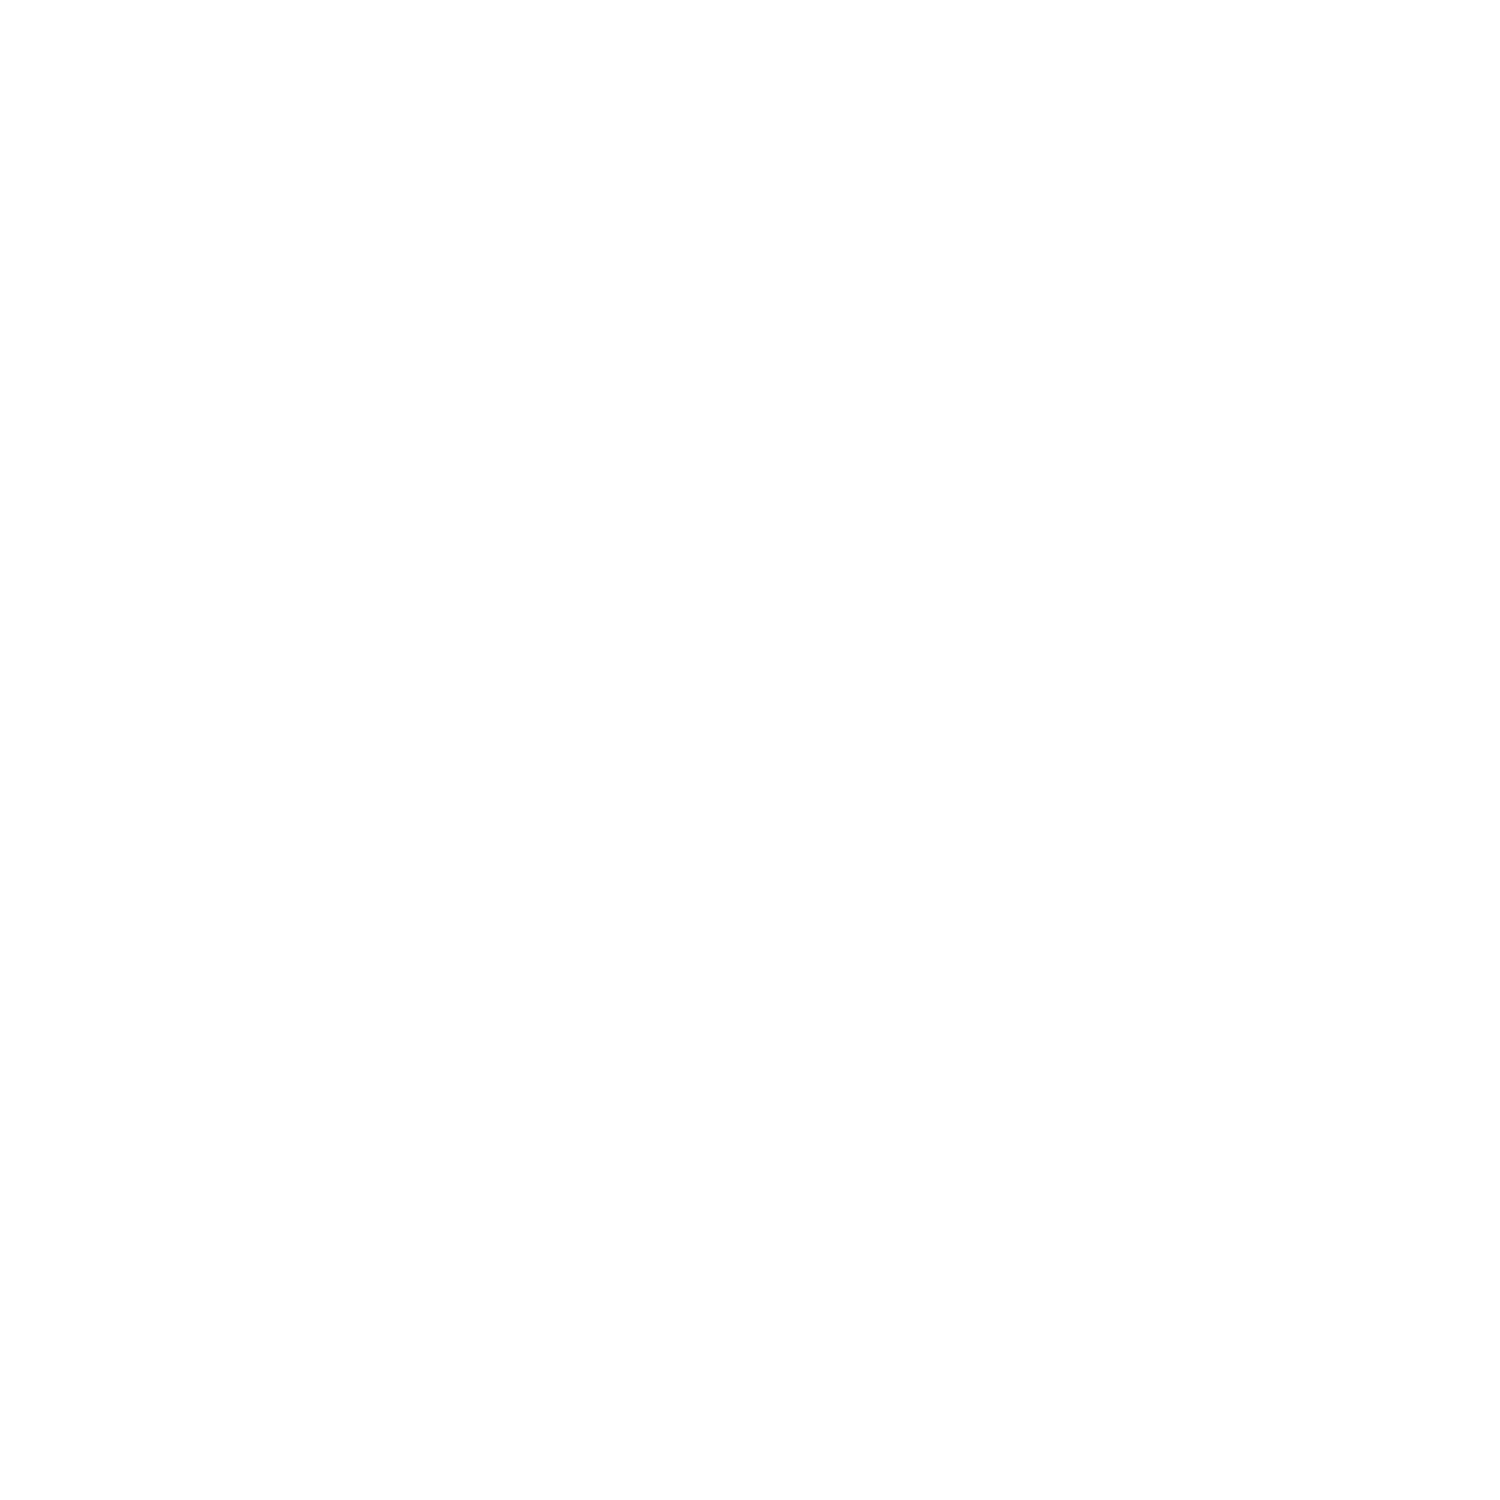 Colorado Startups